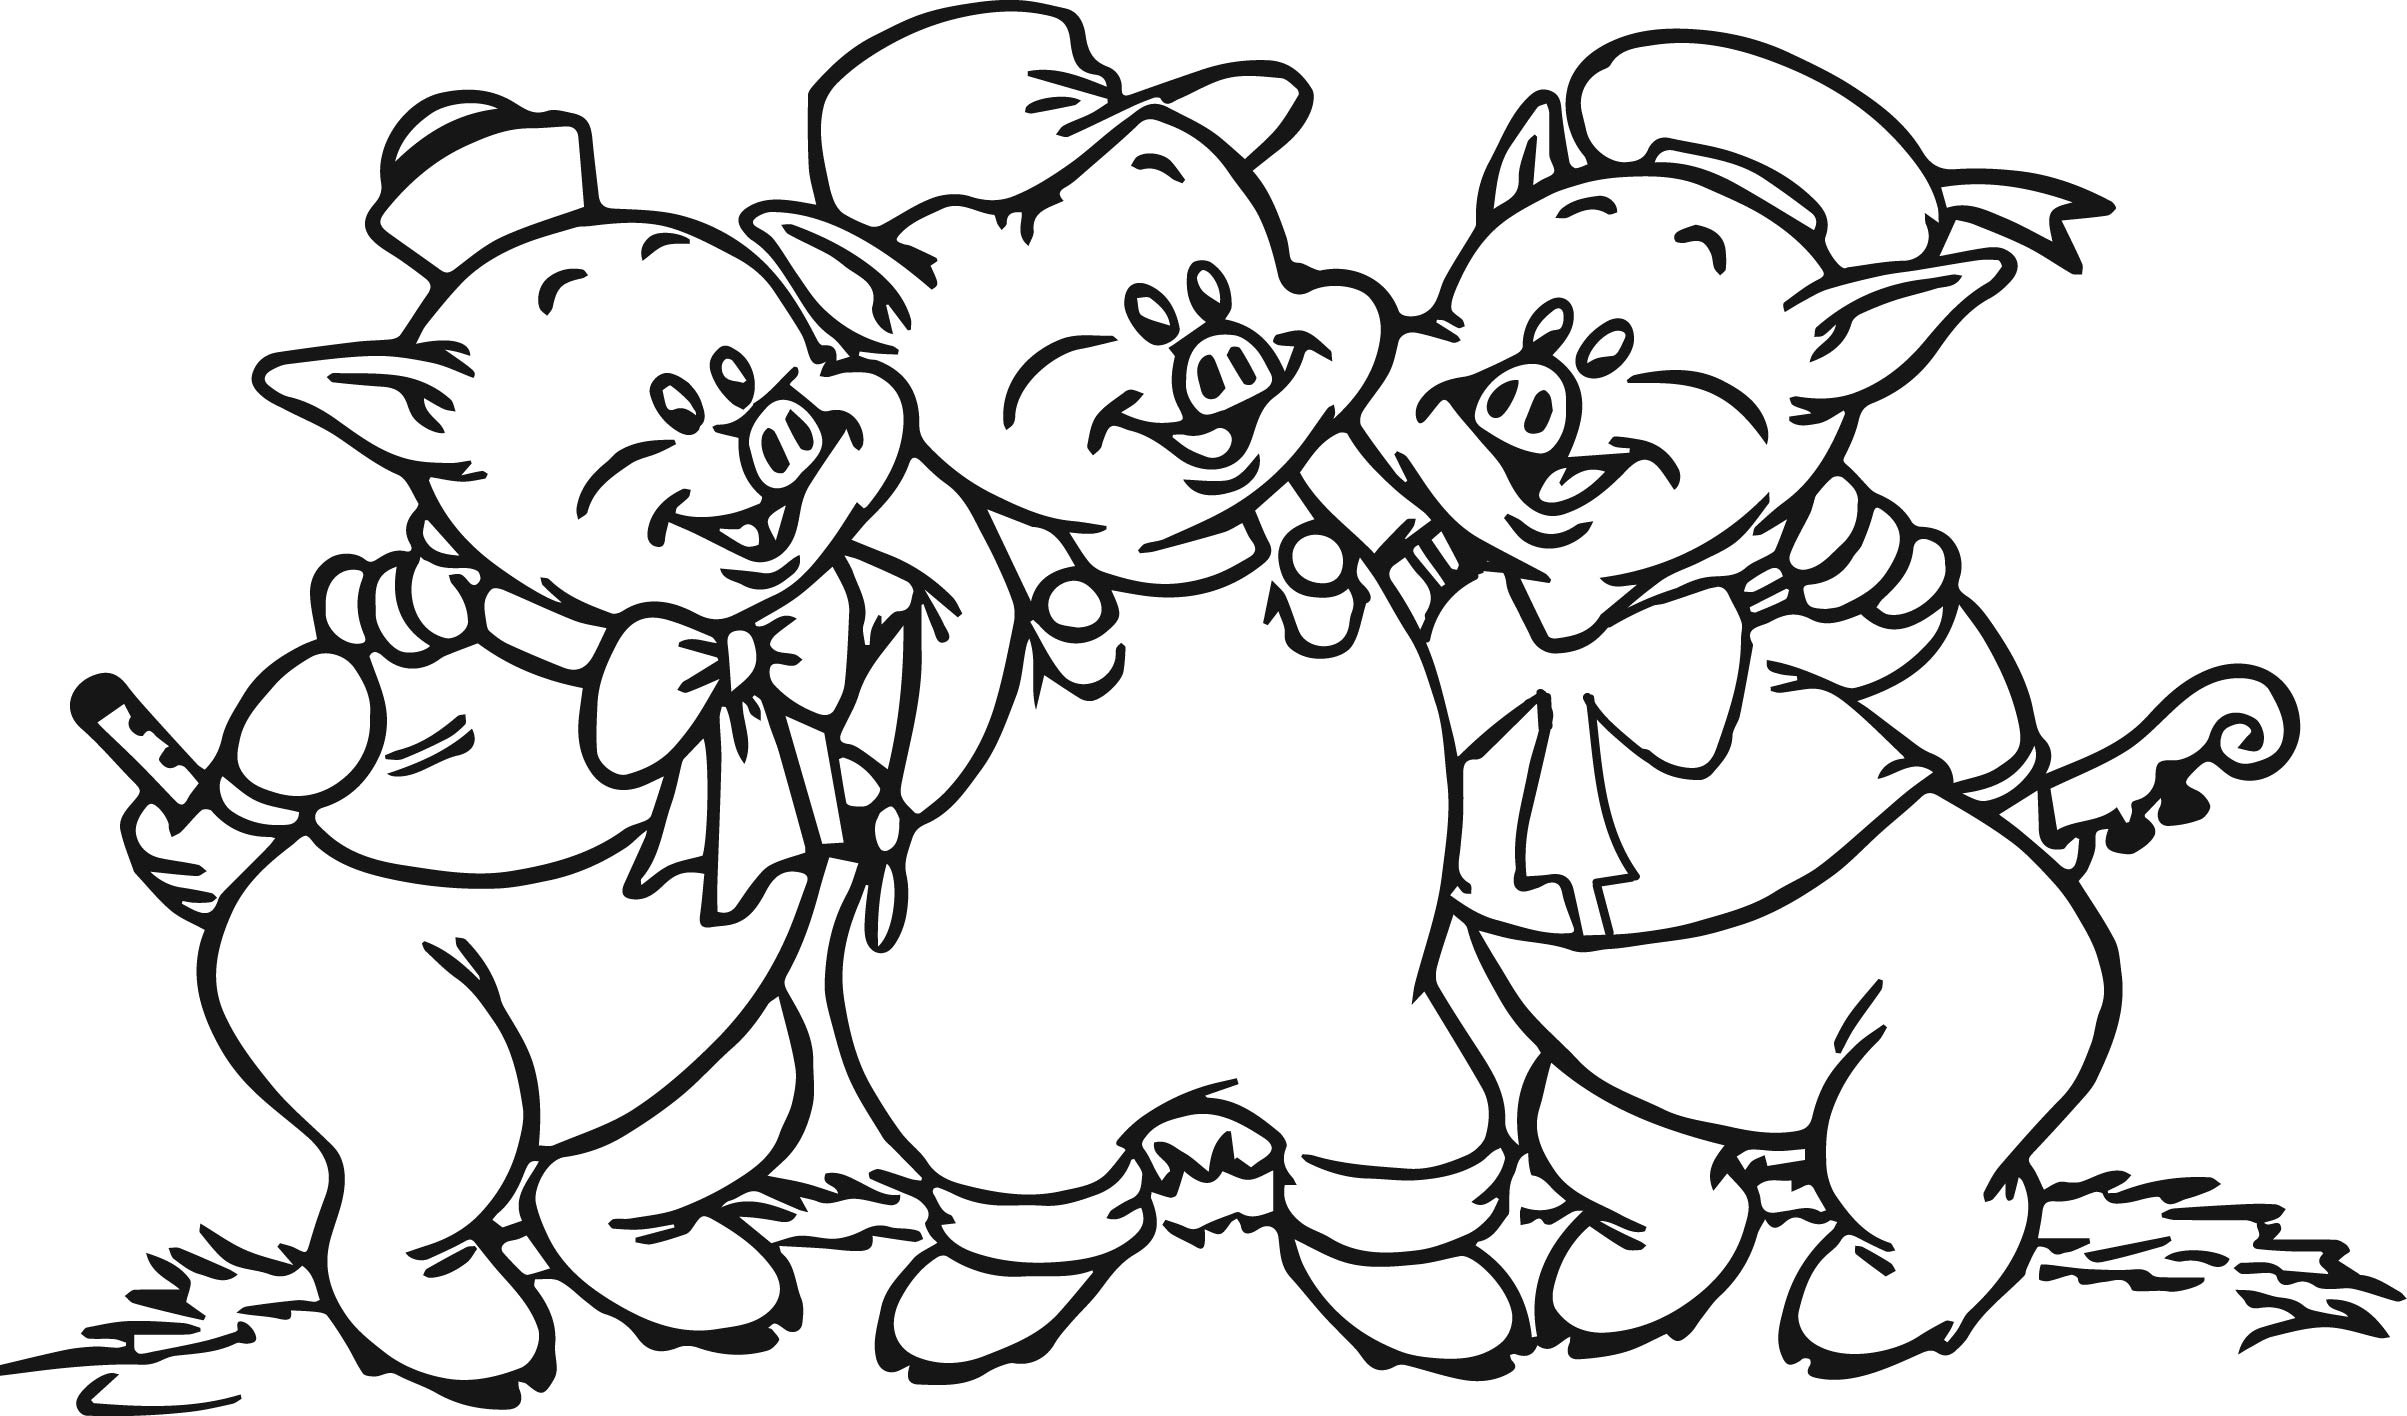 pig pictures to colour pua pig from moana coloring page free coloring pages online to pig pictures colour